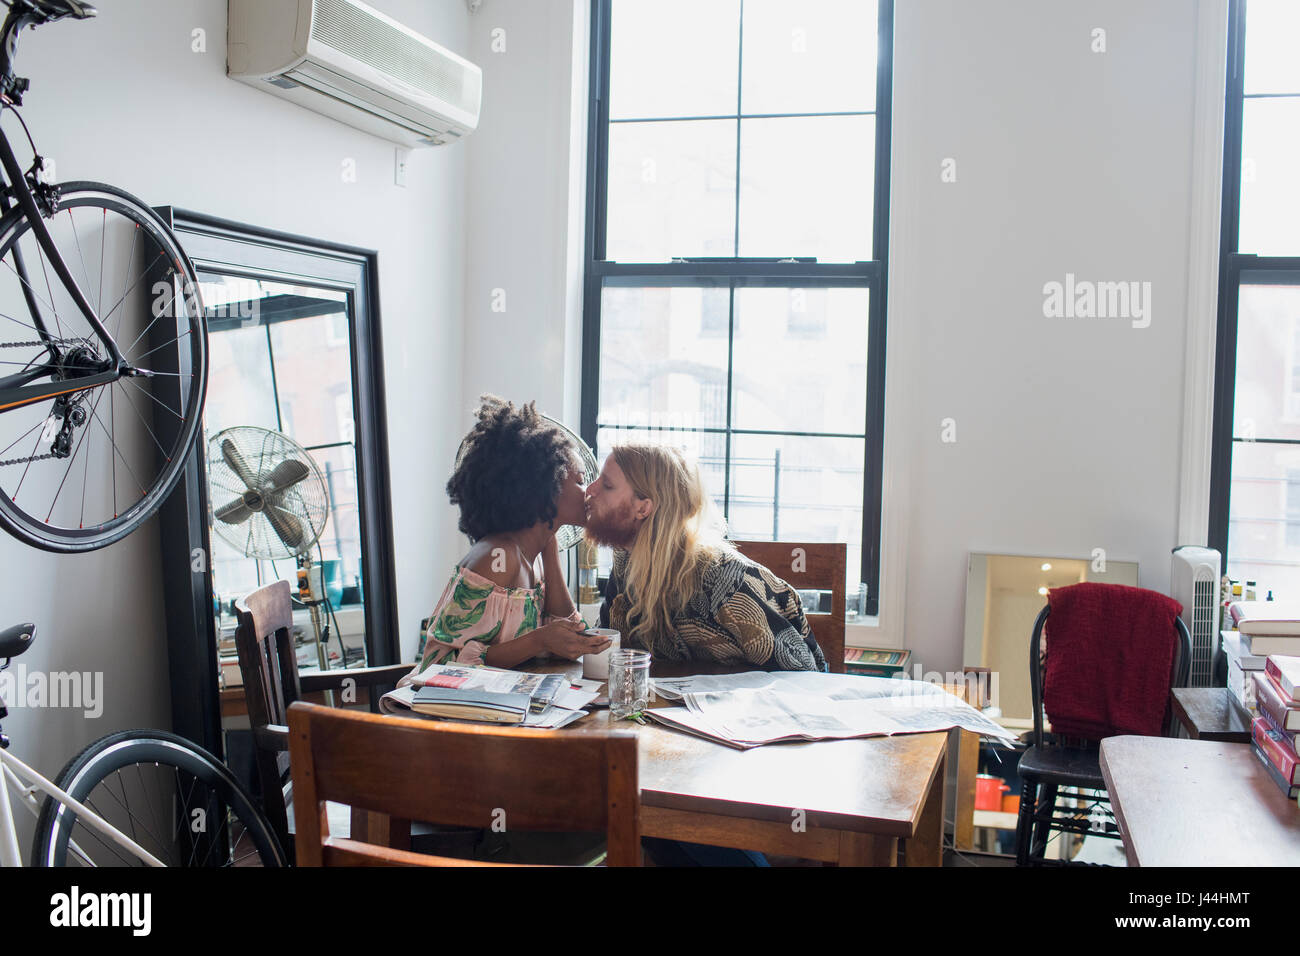 A young couple kissing at a dining table - Stock Image